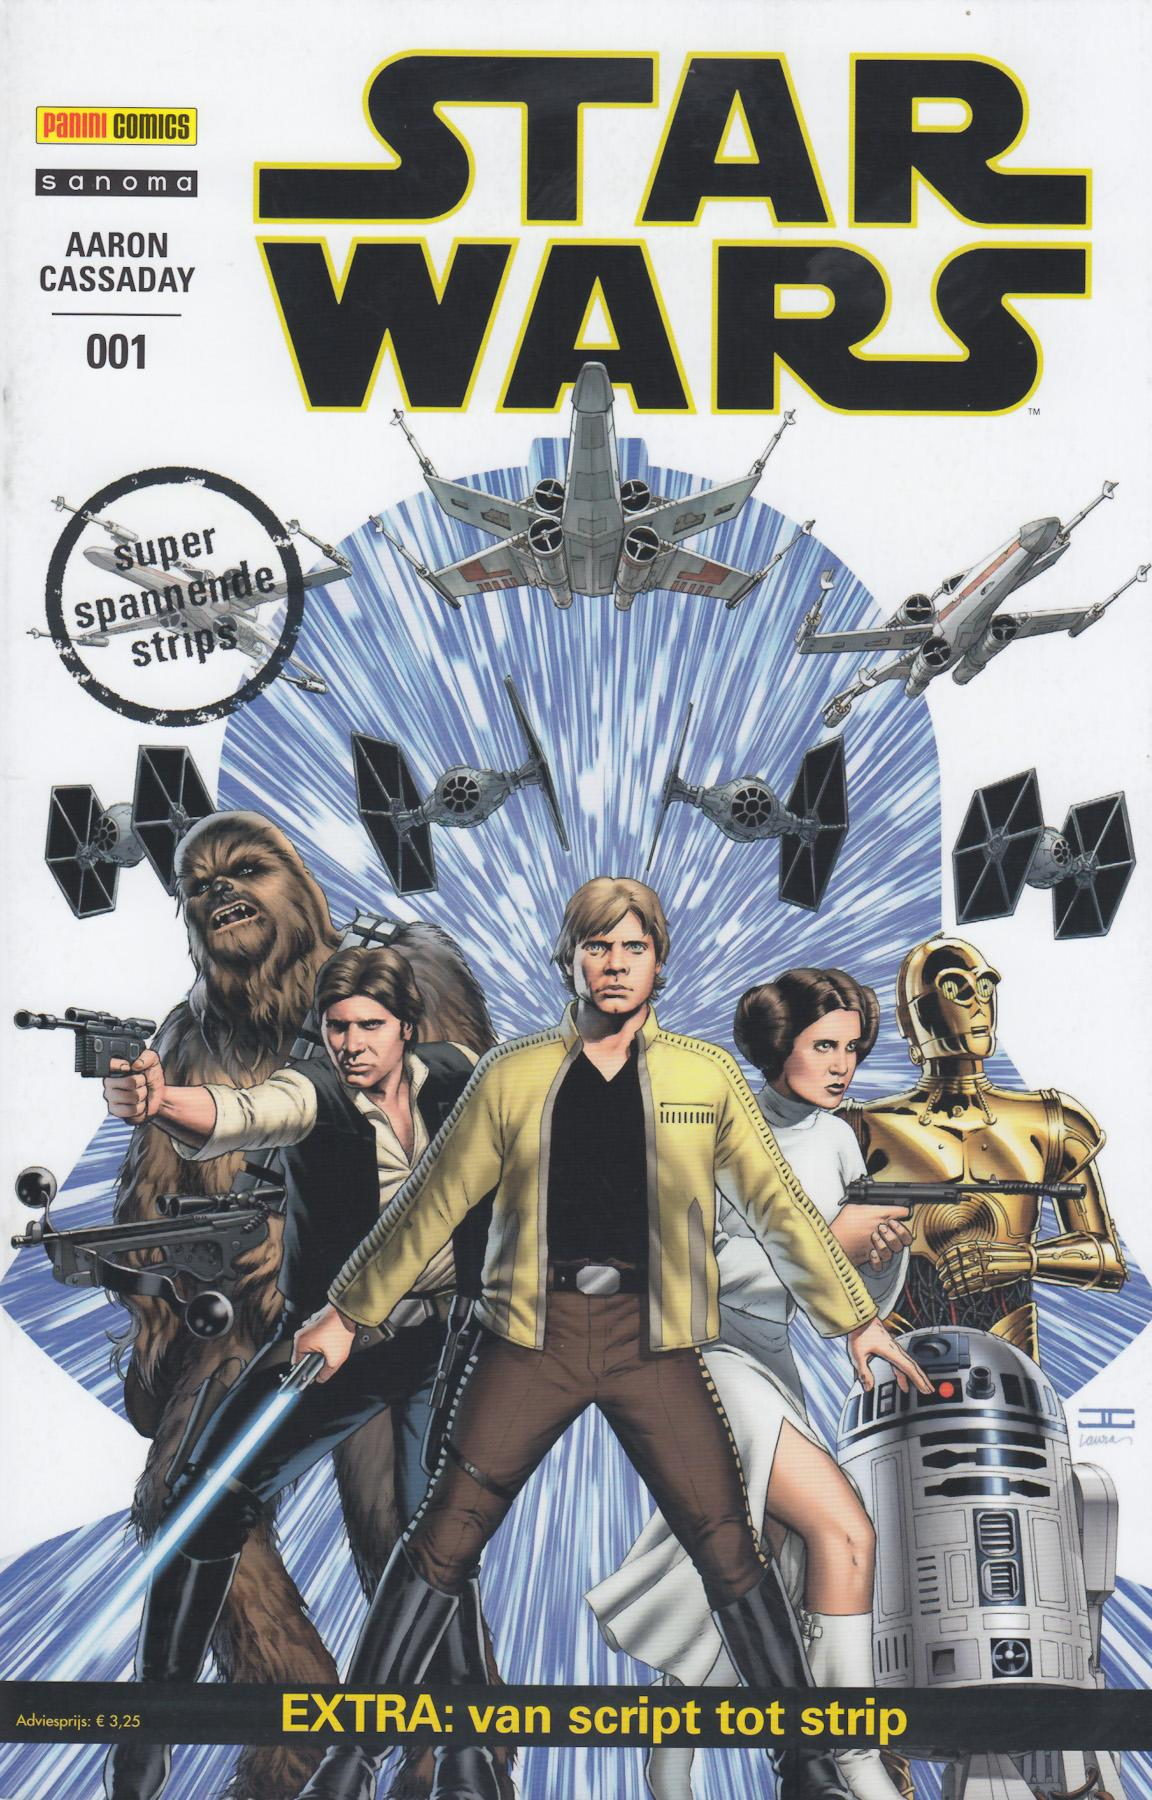 Star Wars (Panini) - 01 - Skywalker Valt Aan